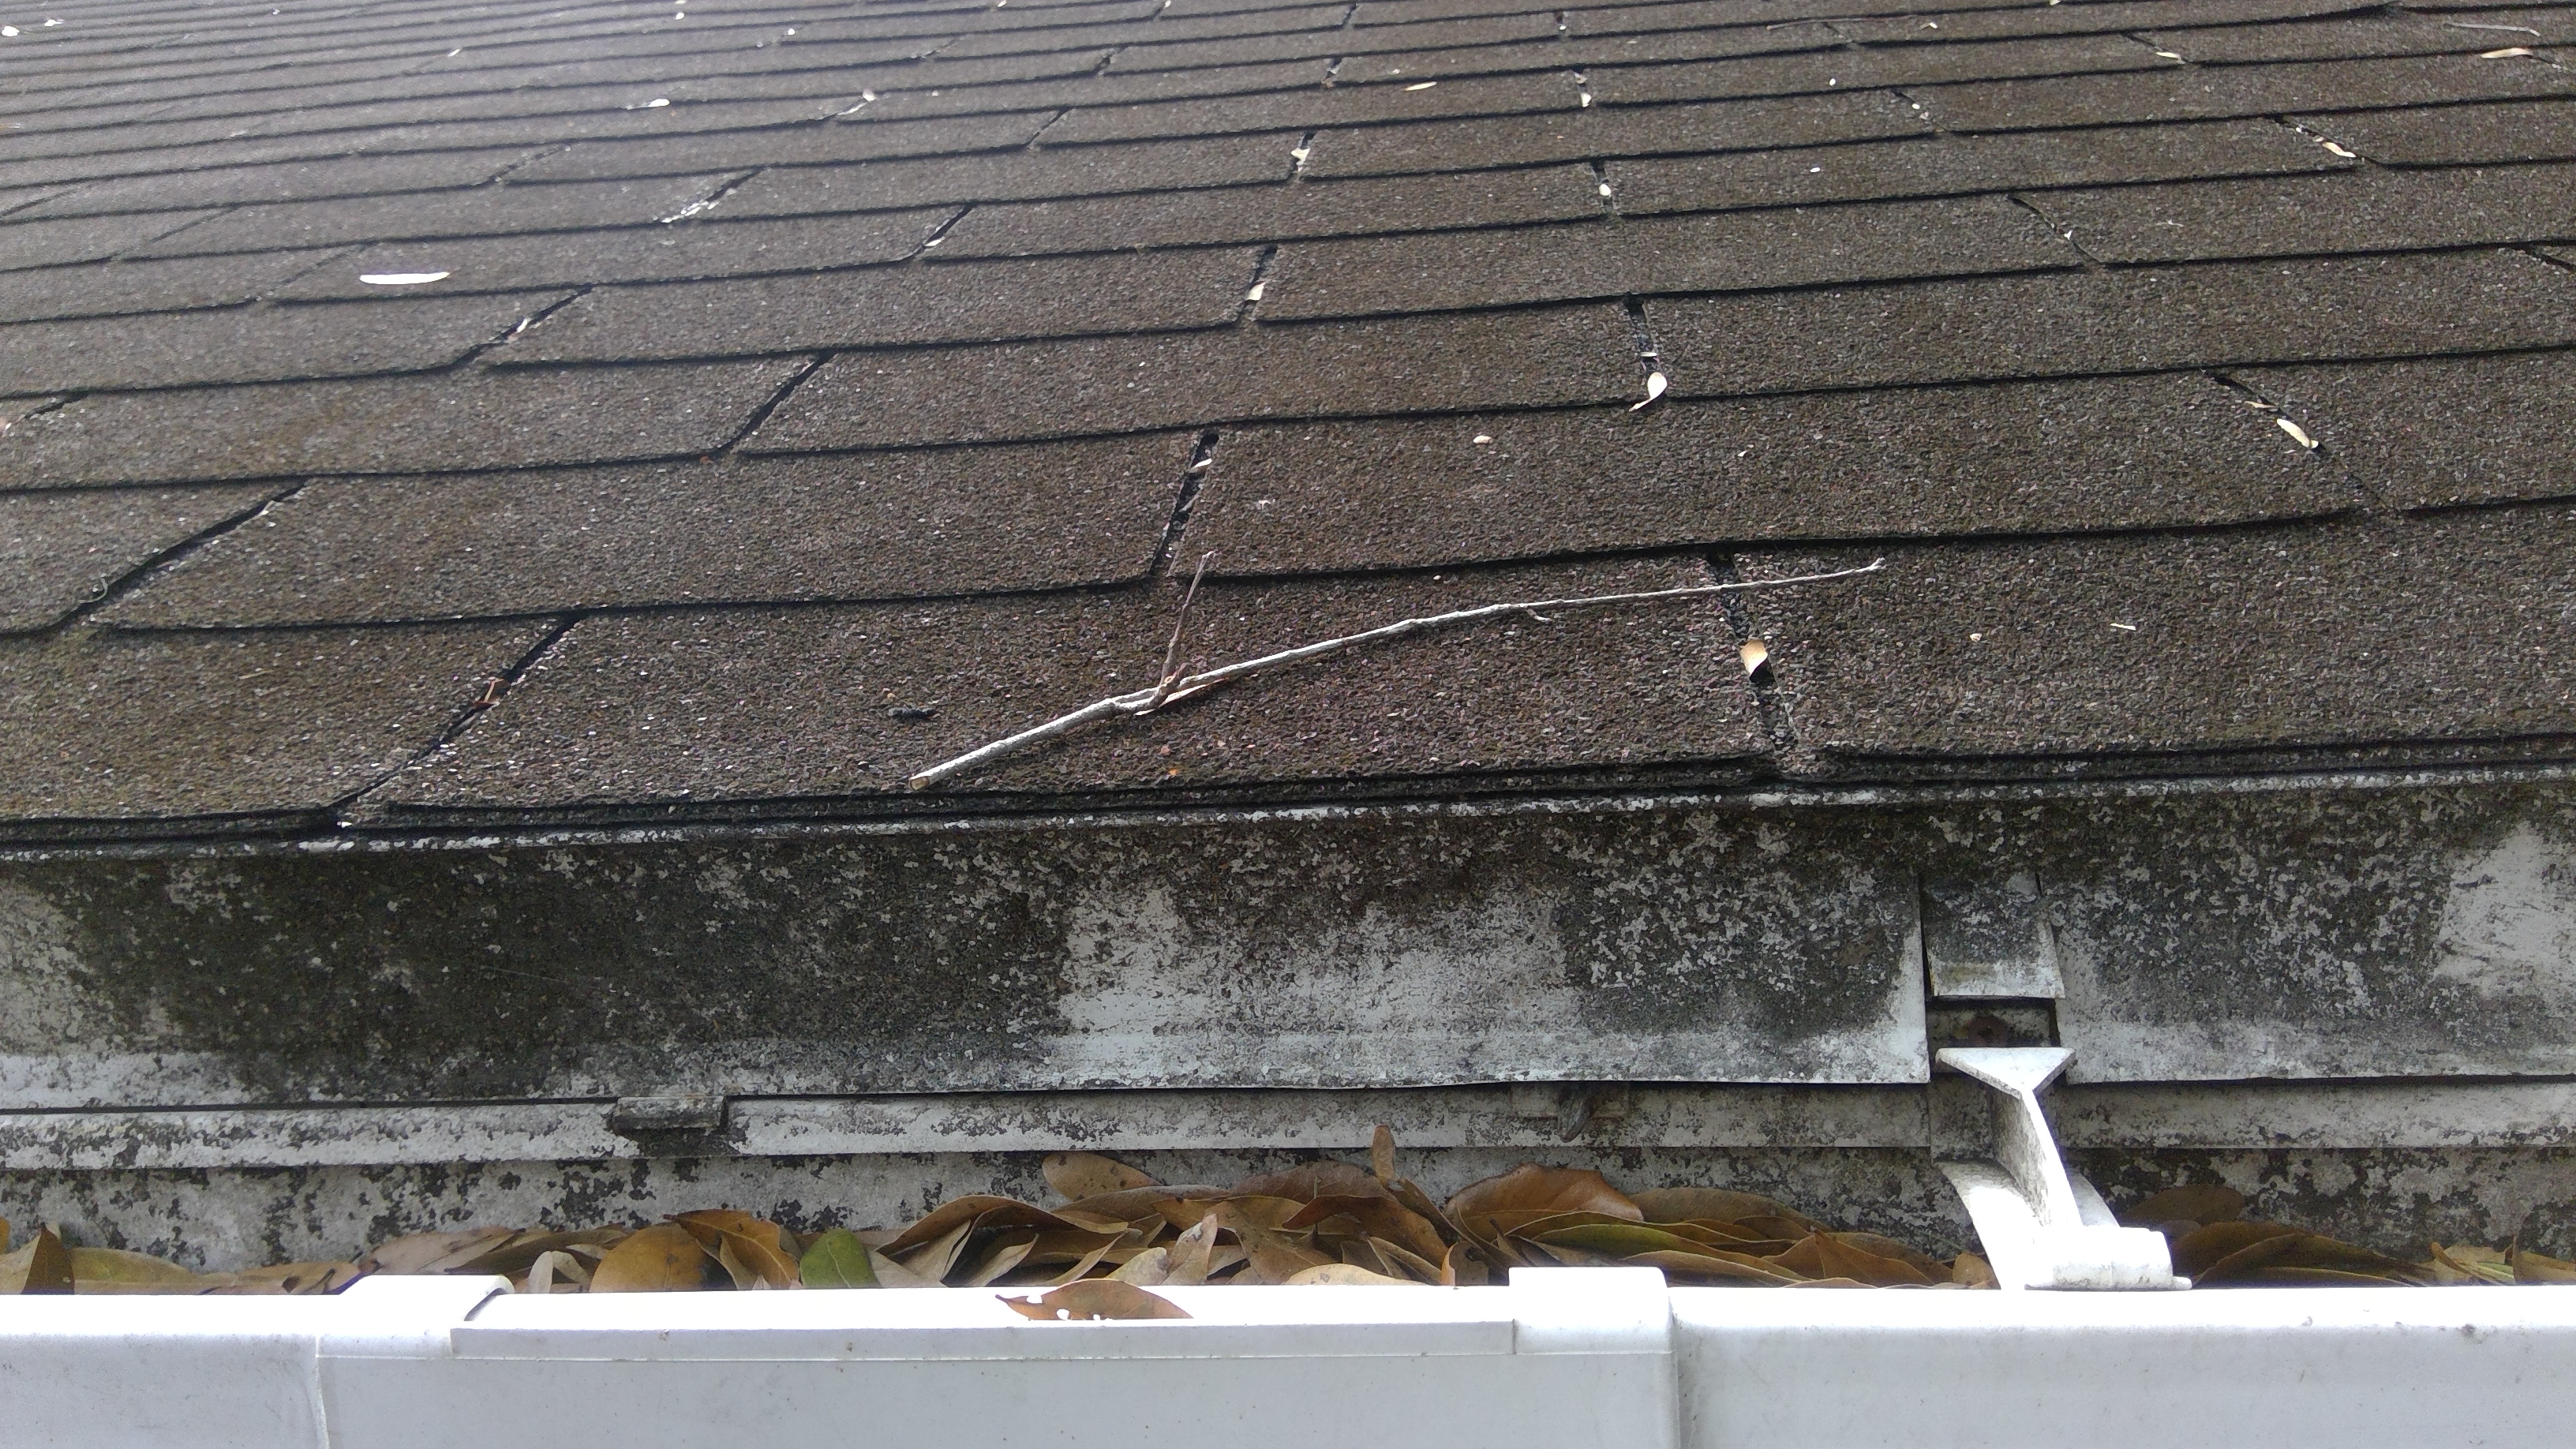 How to perform roof inspections course page 829 internachi roofing material aggregate seems to be collecting at bottom of gutter which could show some possible wear to the shingles may want to have a professional sciox Image collections